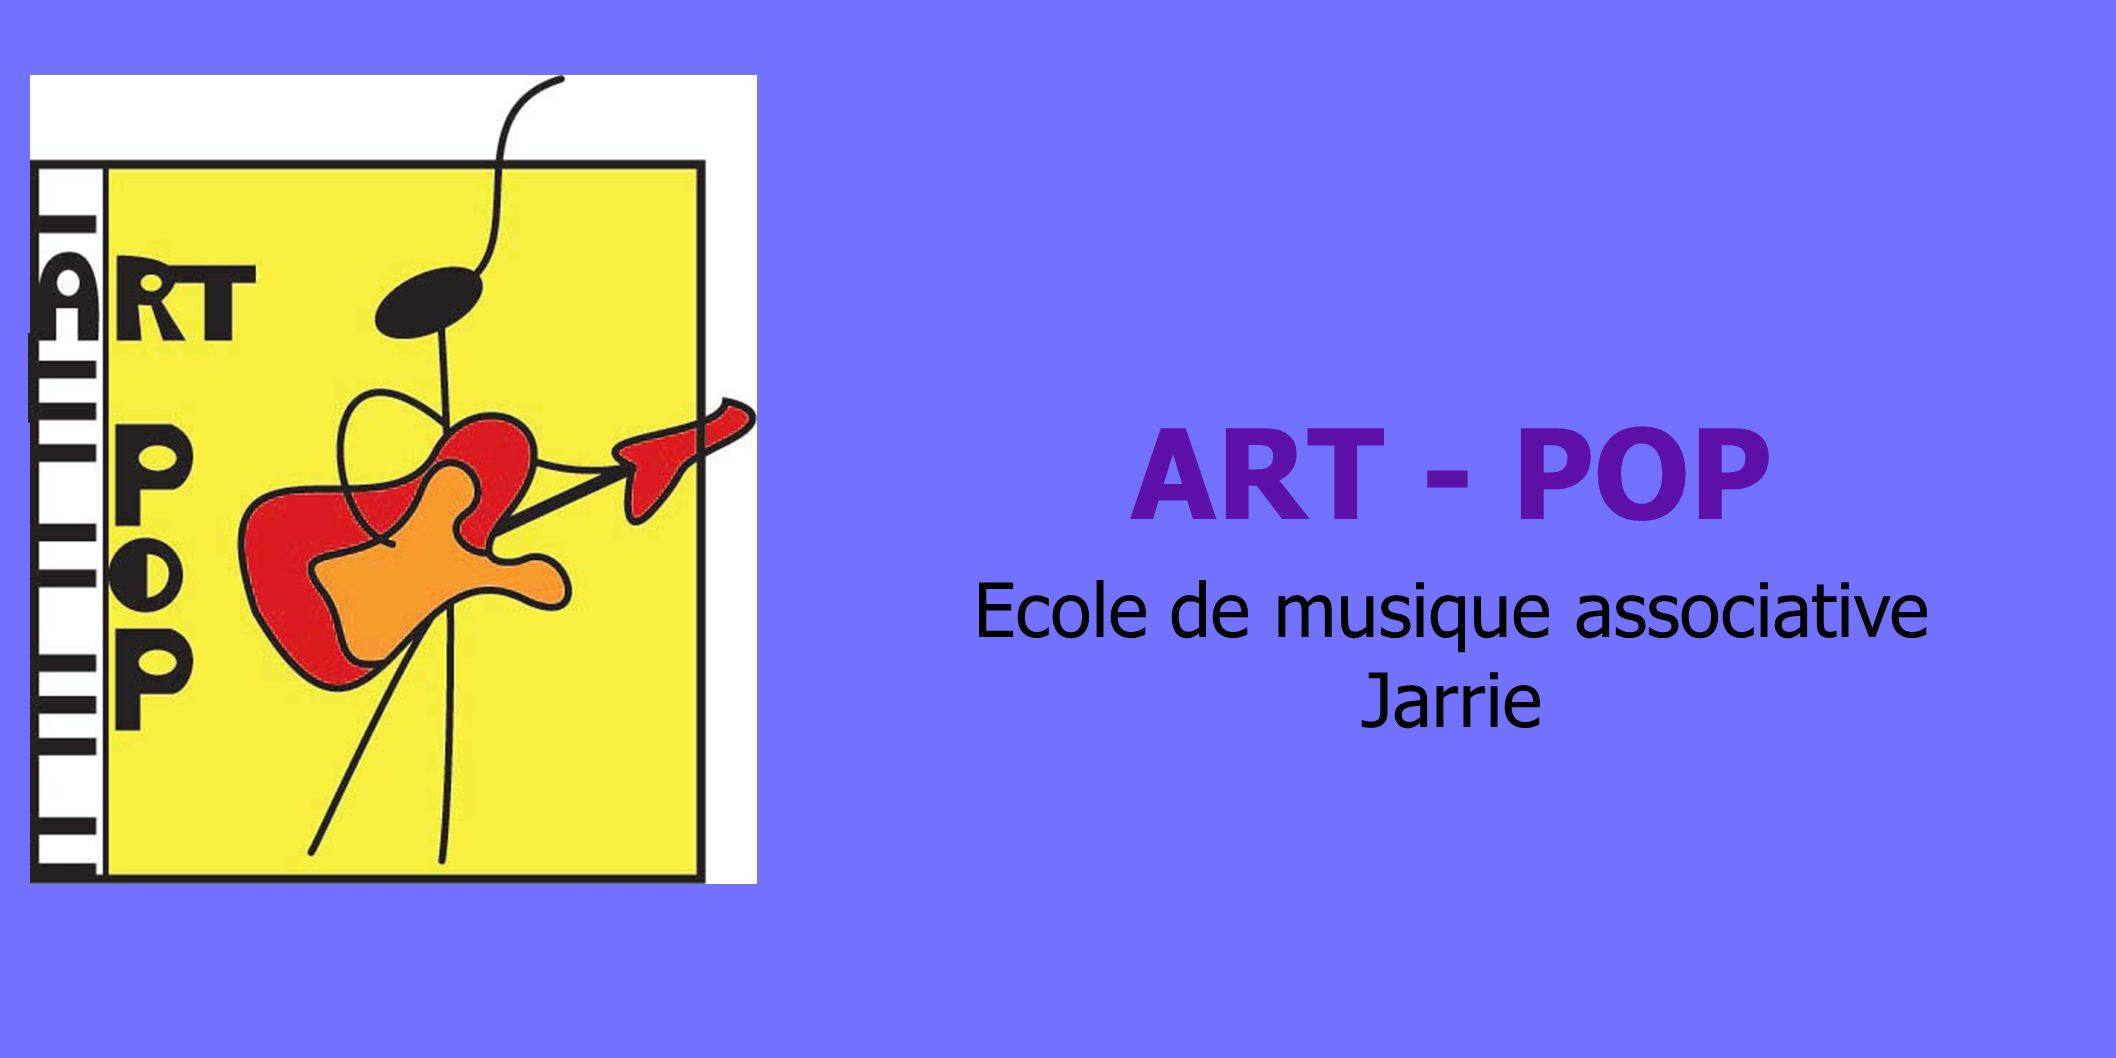 ART - POP Ecole de musique associative Jarrie